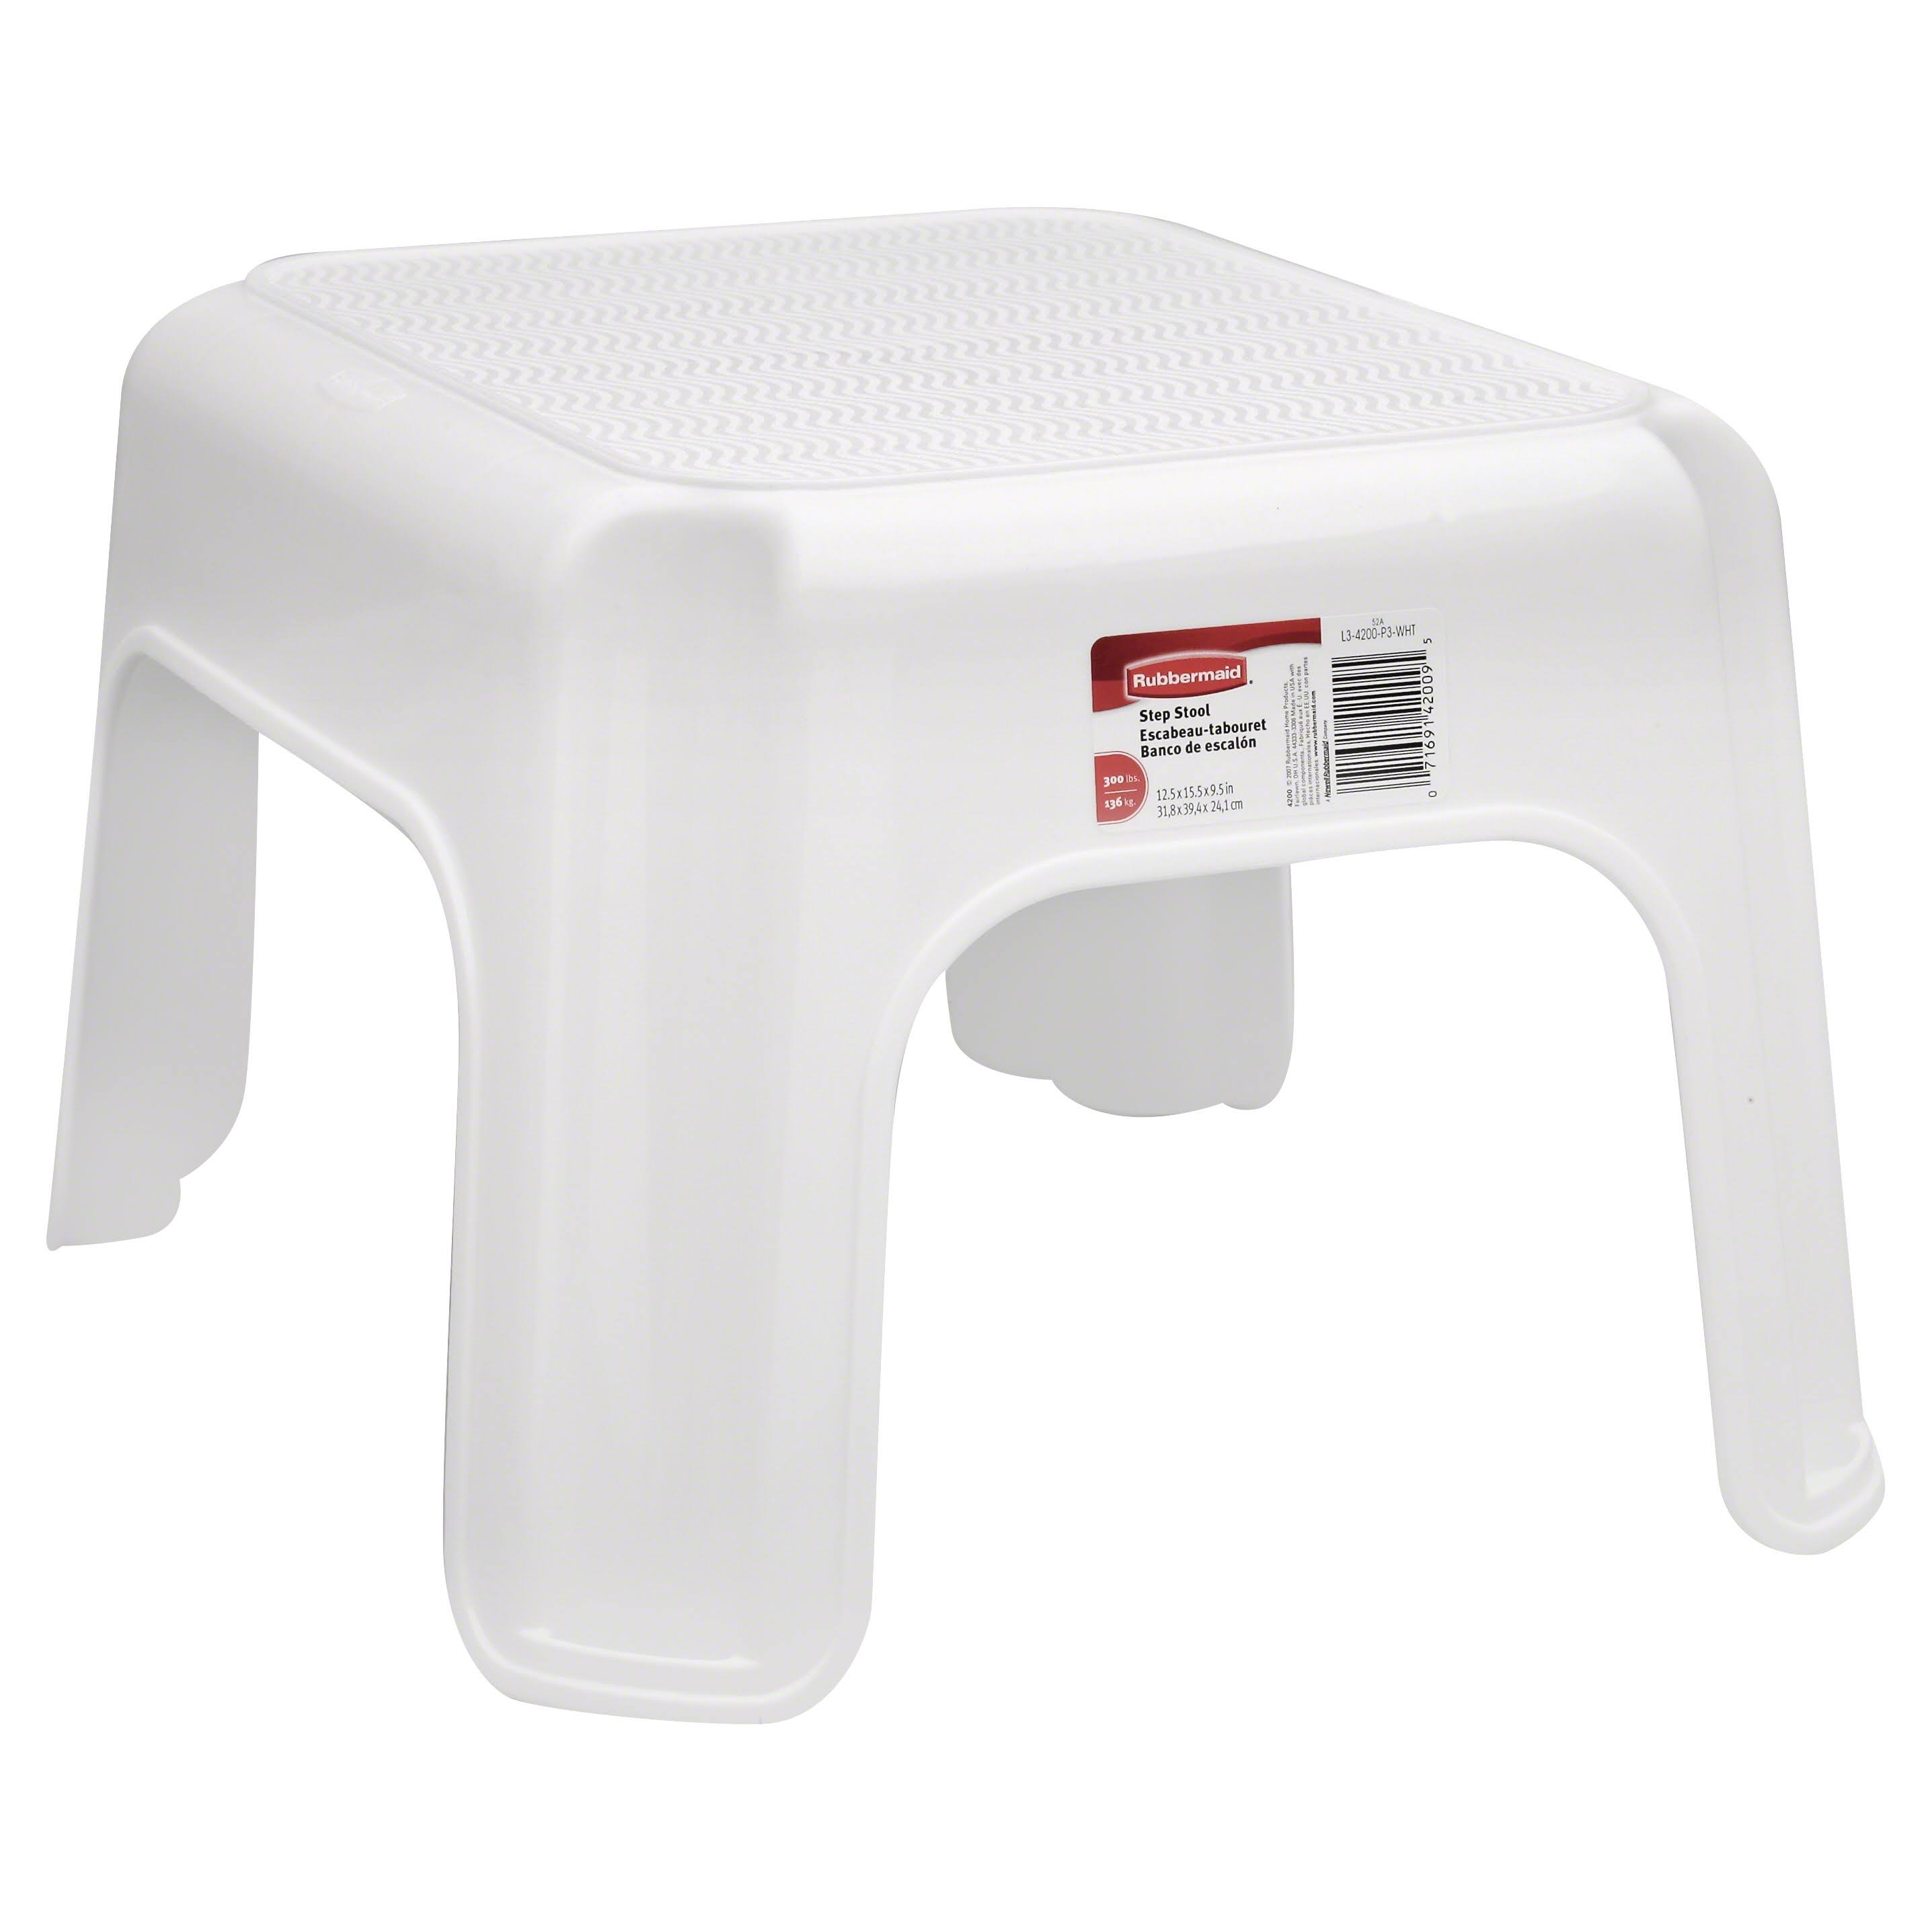 Rubbermaid Step Stool, White